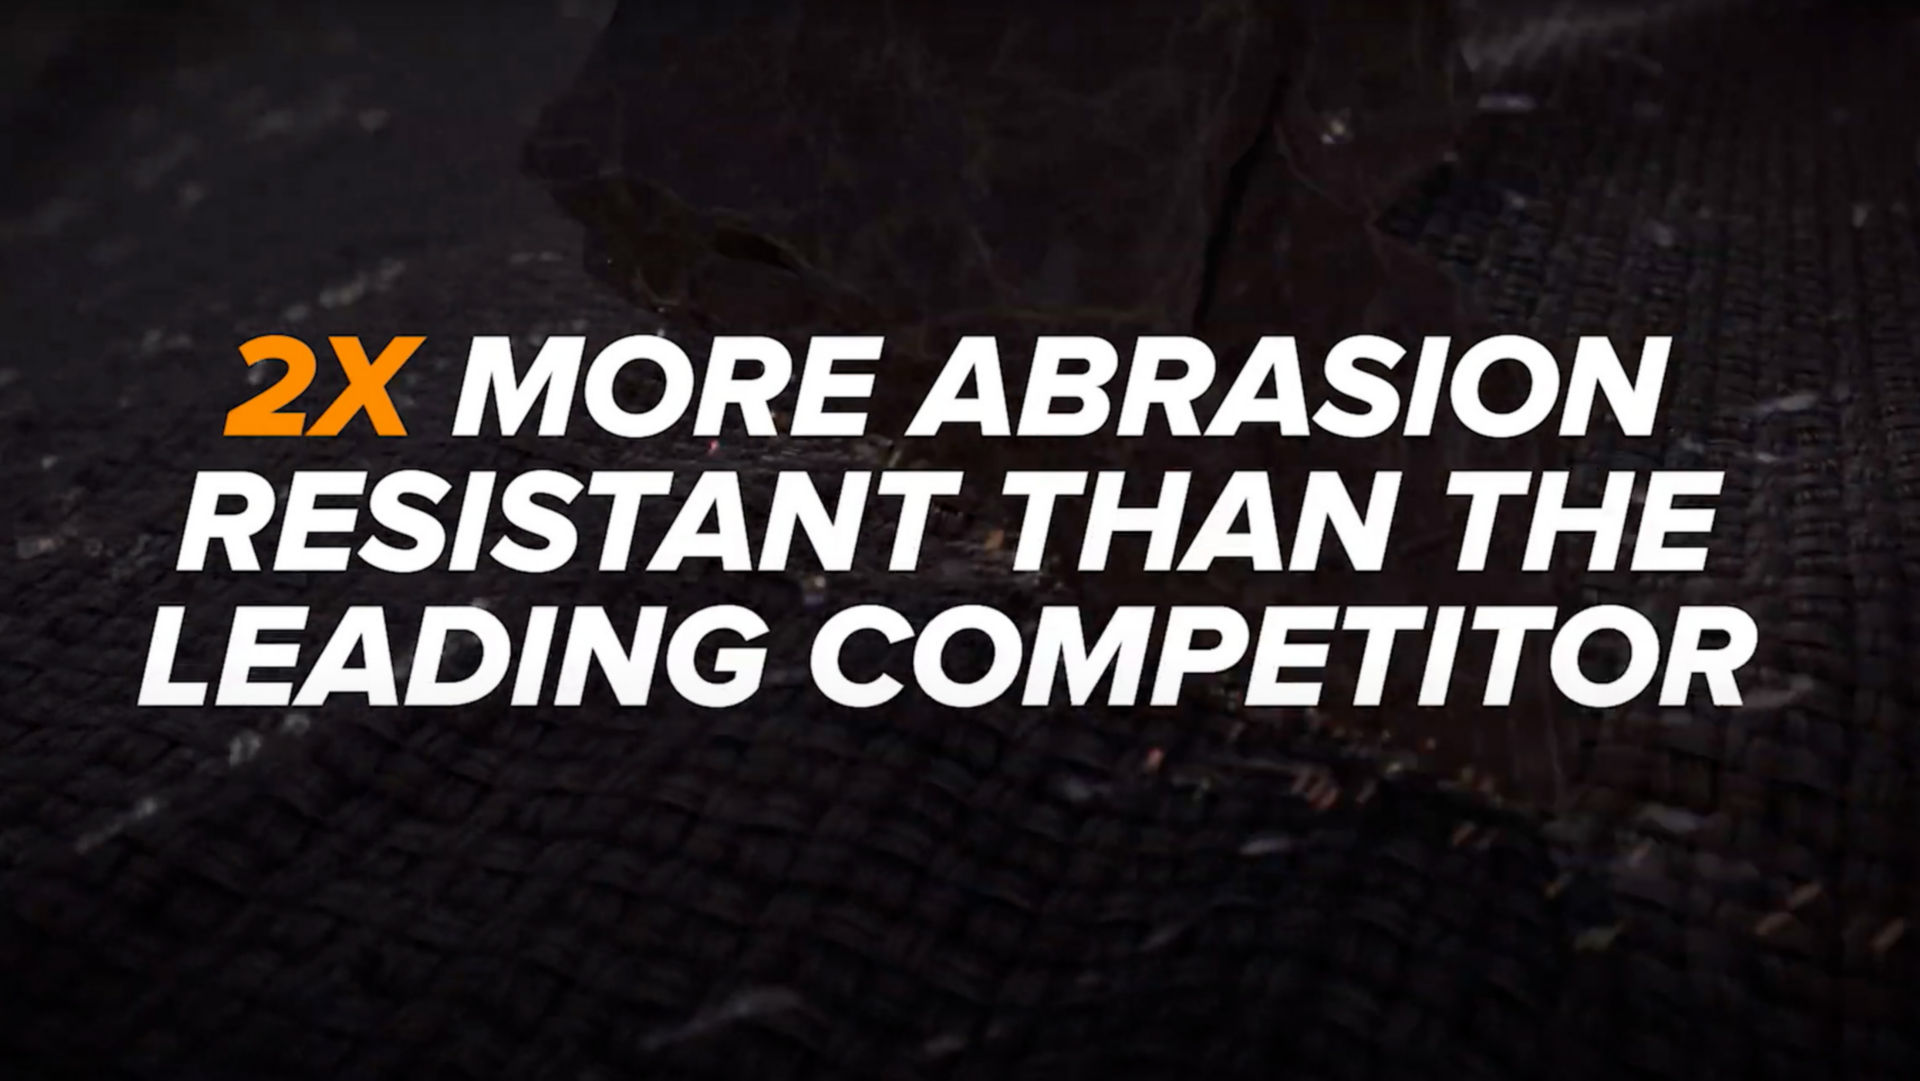 Two times more abrasion-resistant than the leading competitor.